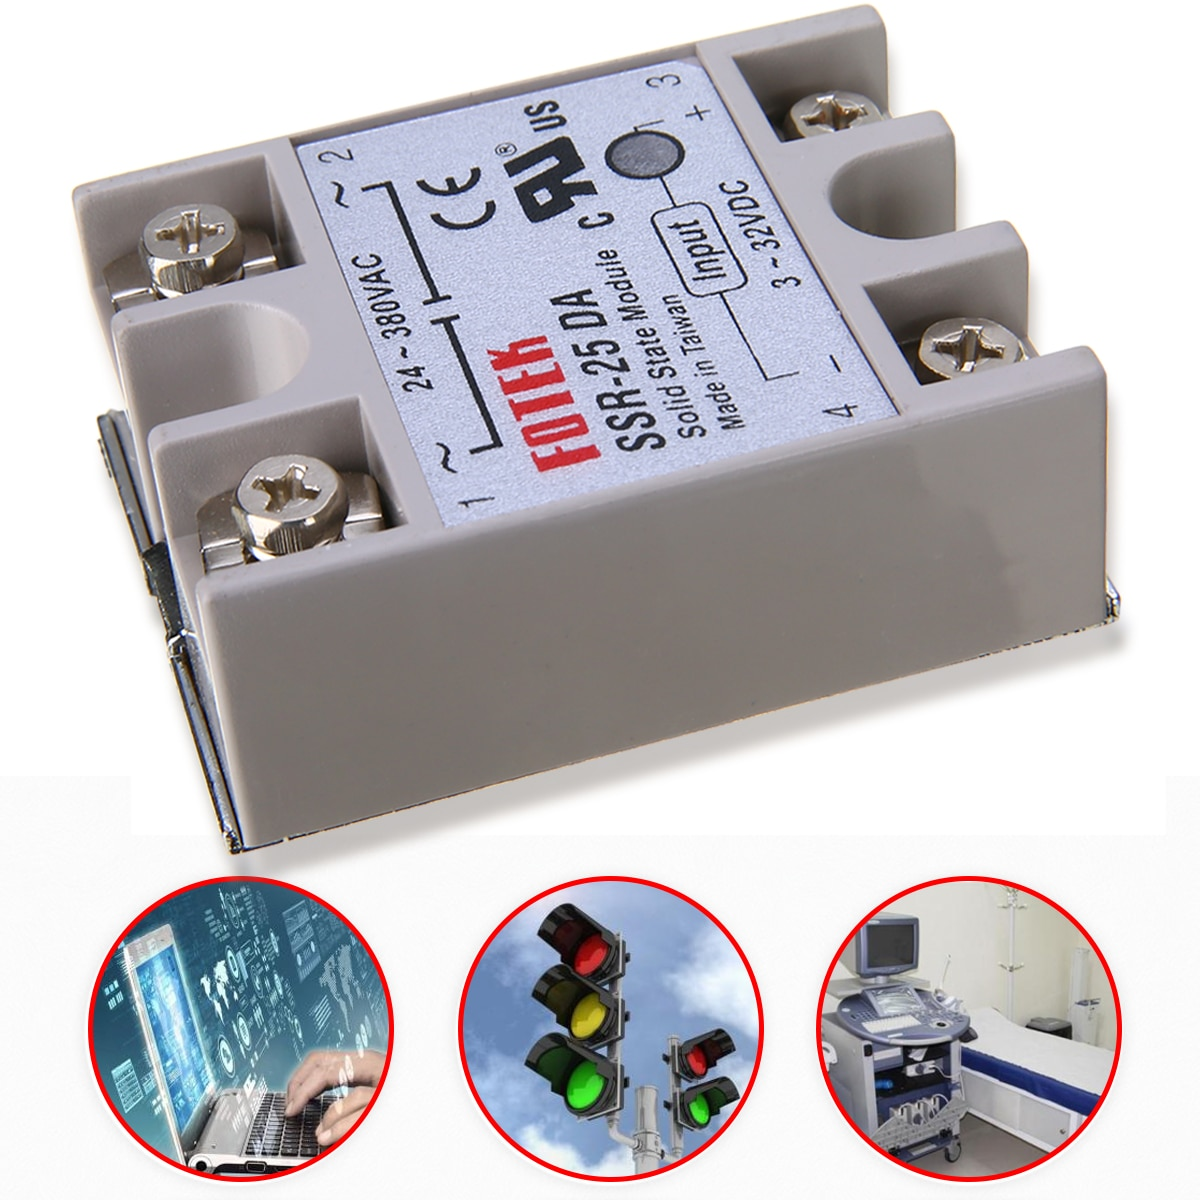 SSR-25 DA White Shell 3-32V DC Input Voltage 24-380V AC Output Voltage 25A Output Current Control Solid State Relay